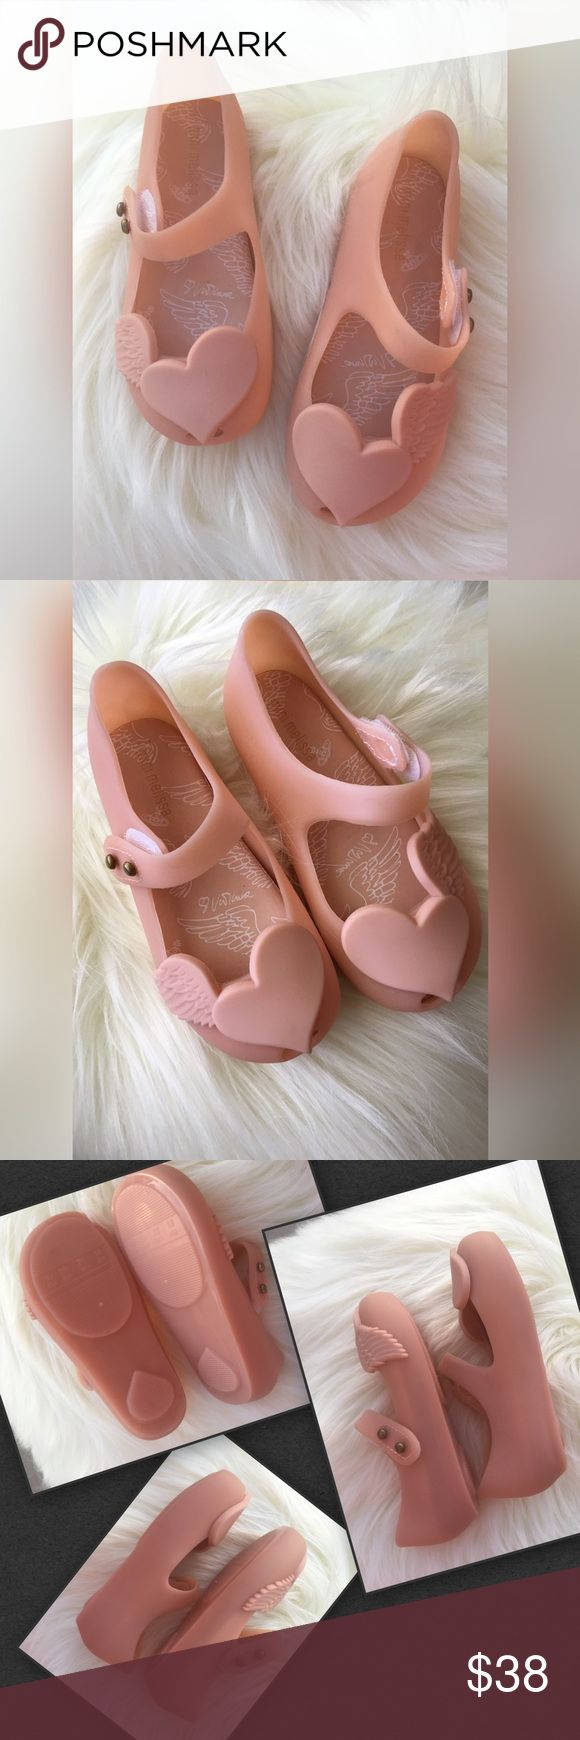 Blush Color  Heart Wing Jelly Shoe Cut out Hearts and wings graphics  on these adorable mini Melissa jelly shoes. Blush color (sold as beige) perfect for spring summer! Dressy or everyday these are comfy and perfect. Easy on and off closure. Little girls just love them! Just charming! Mini Melissa Shoes